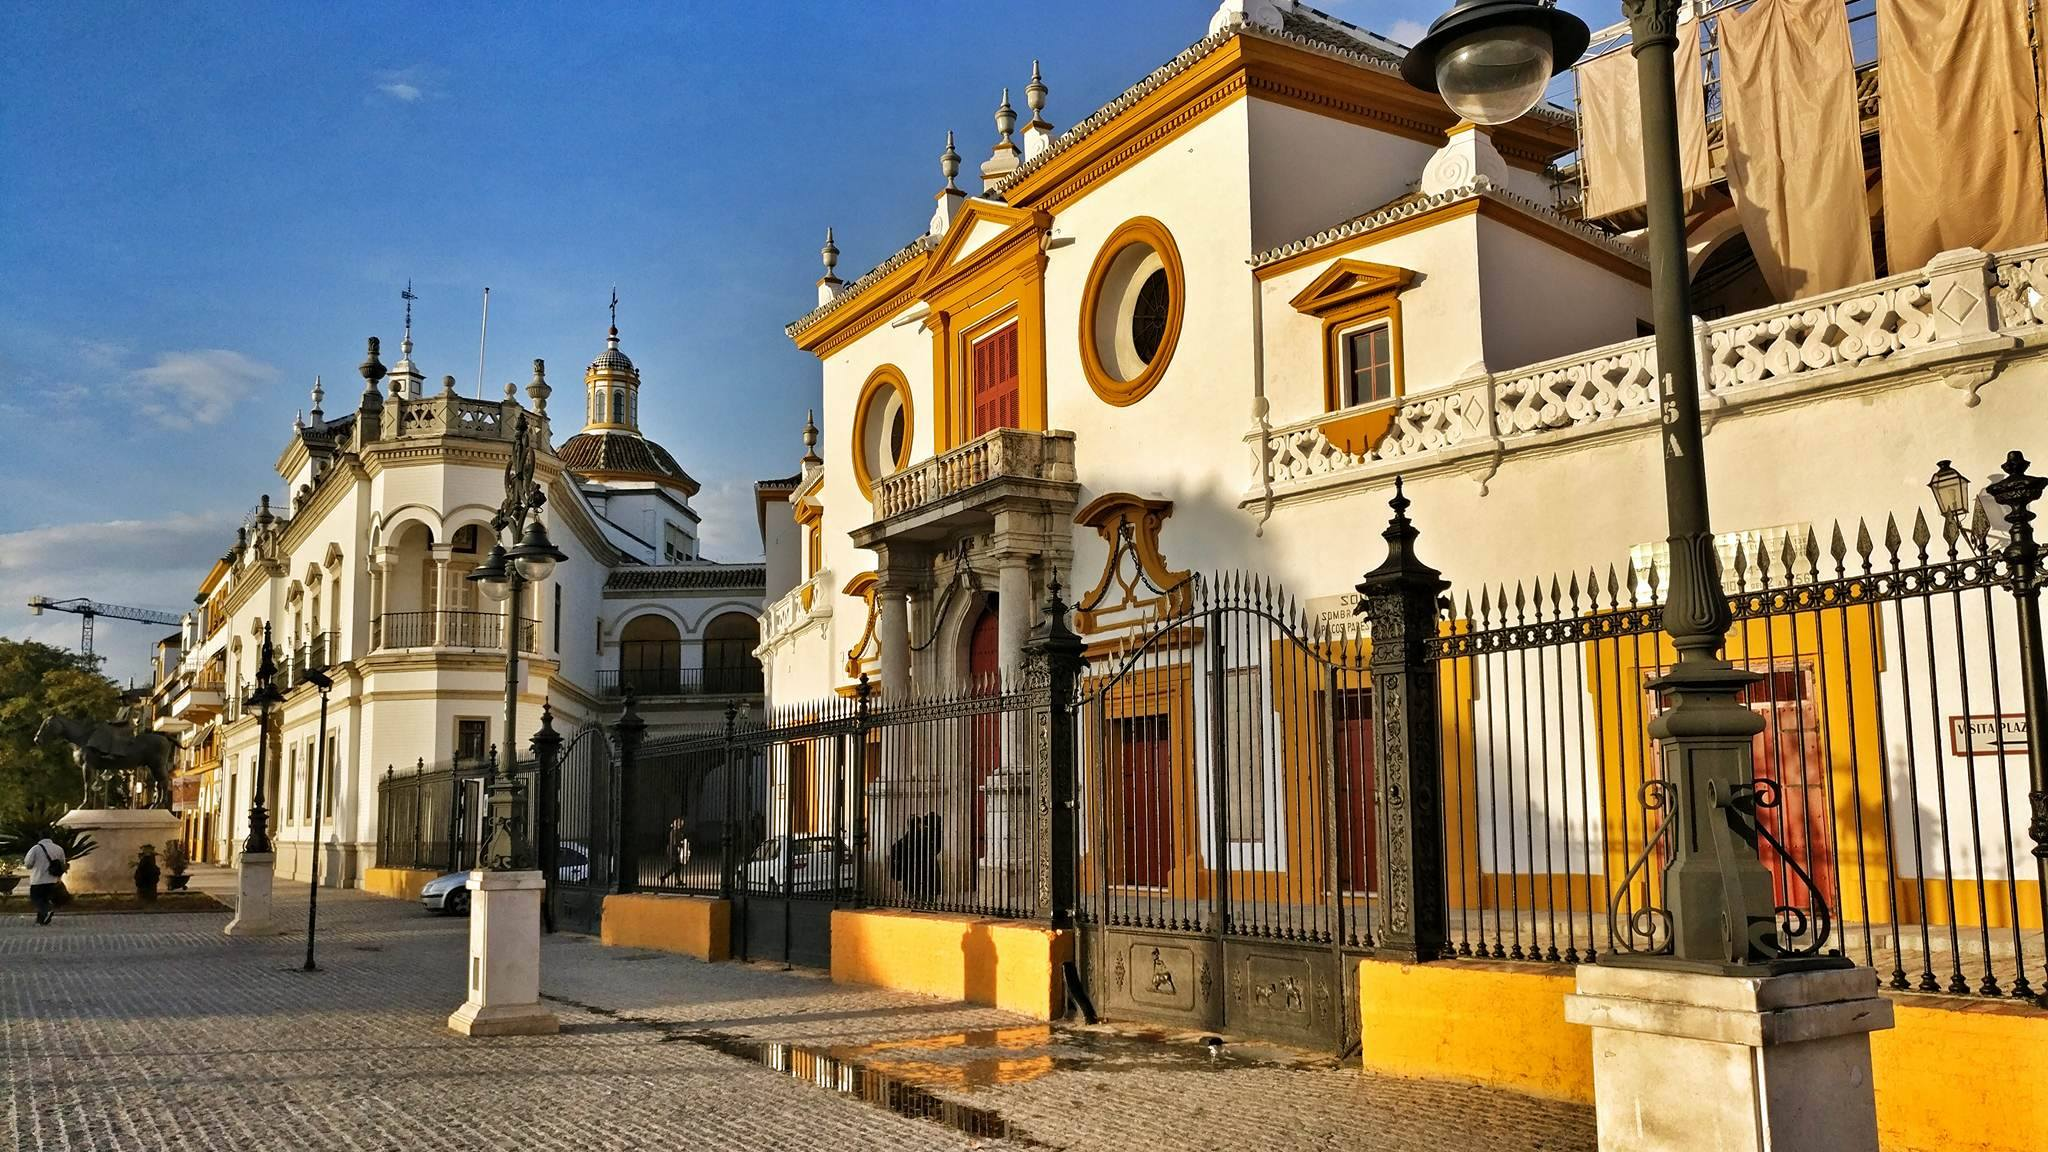 Front view of the La Real Maestranza in Sevilla, Spain in the setting sun